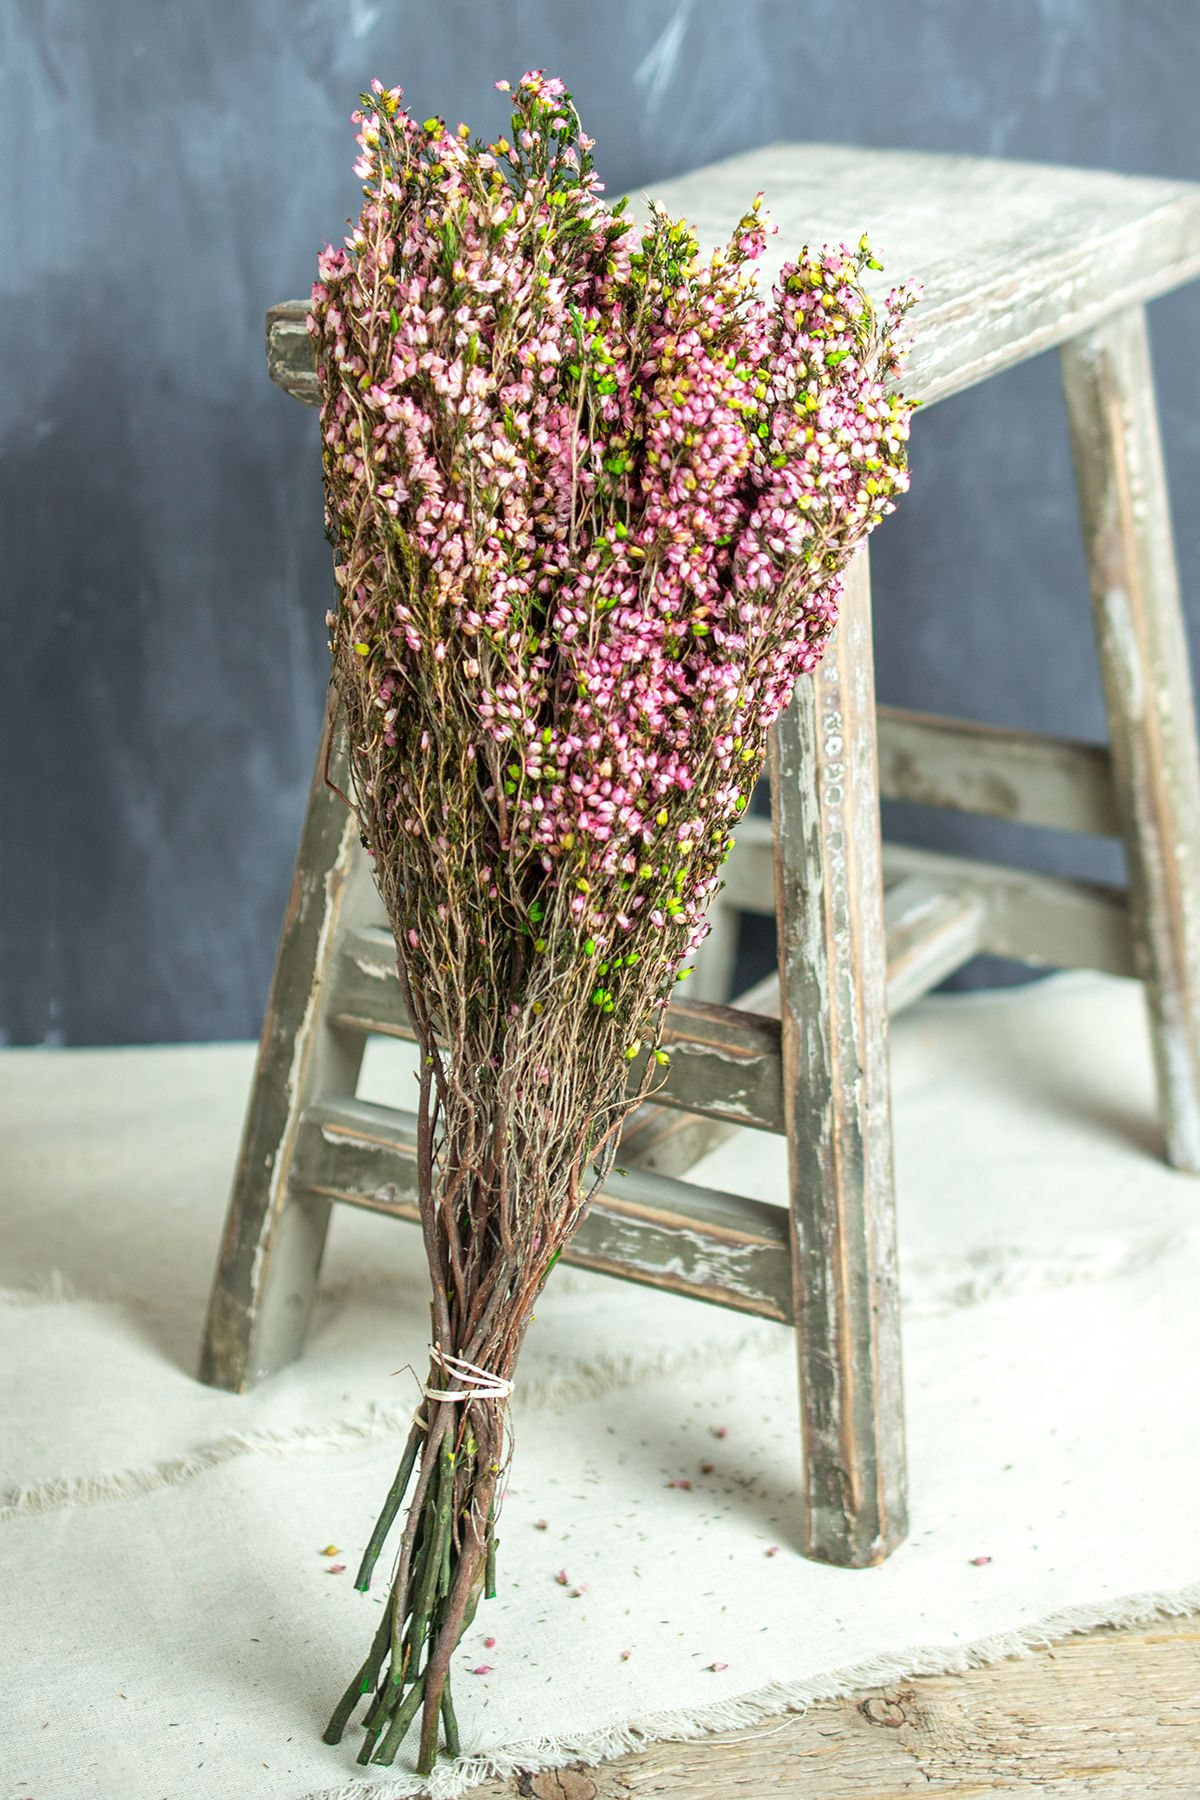 make your own wedding flower centerpieces%0A Create your own preserved bouquets with these delicate pink flowers